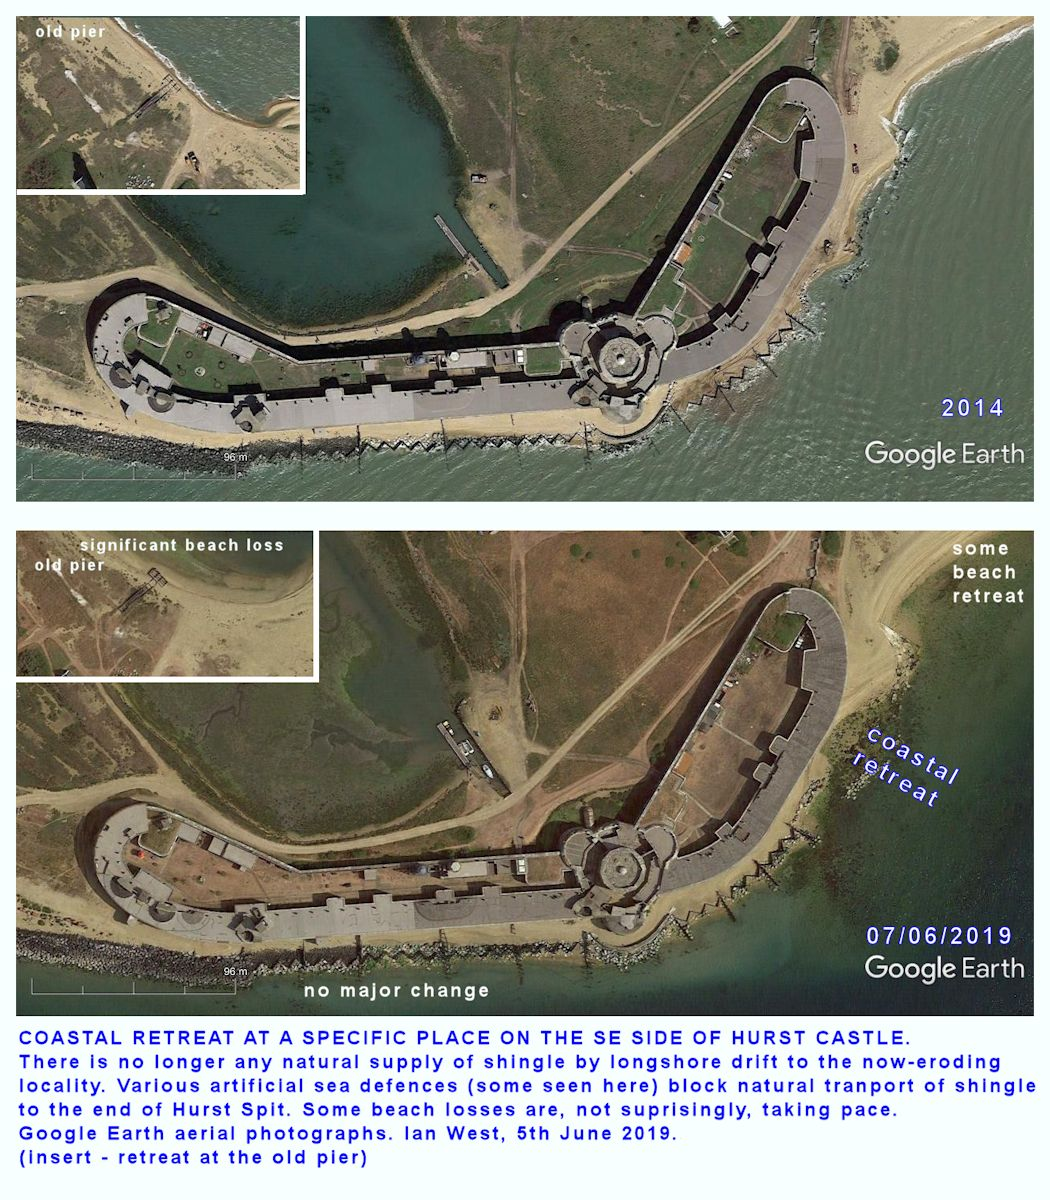 Comparision images re coastal changes near the eastern end of Hurst Castle and Hurst Spit, based on Google Earth